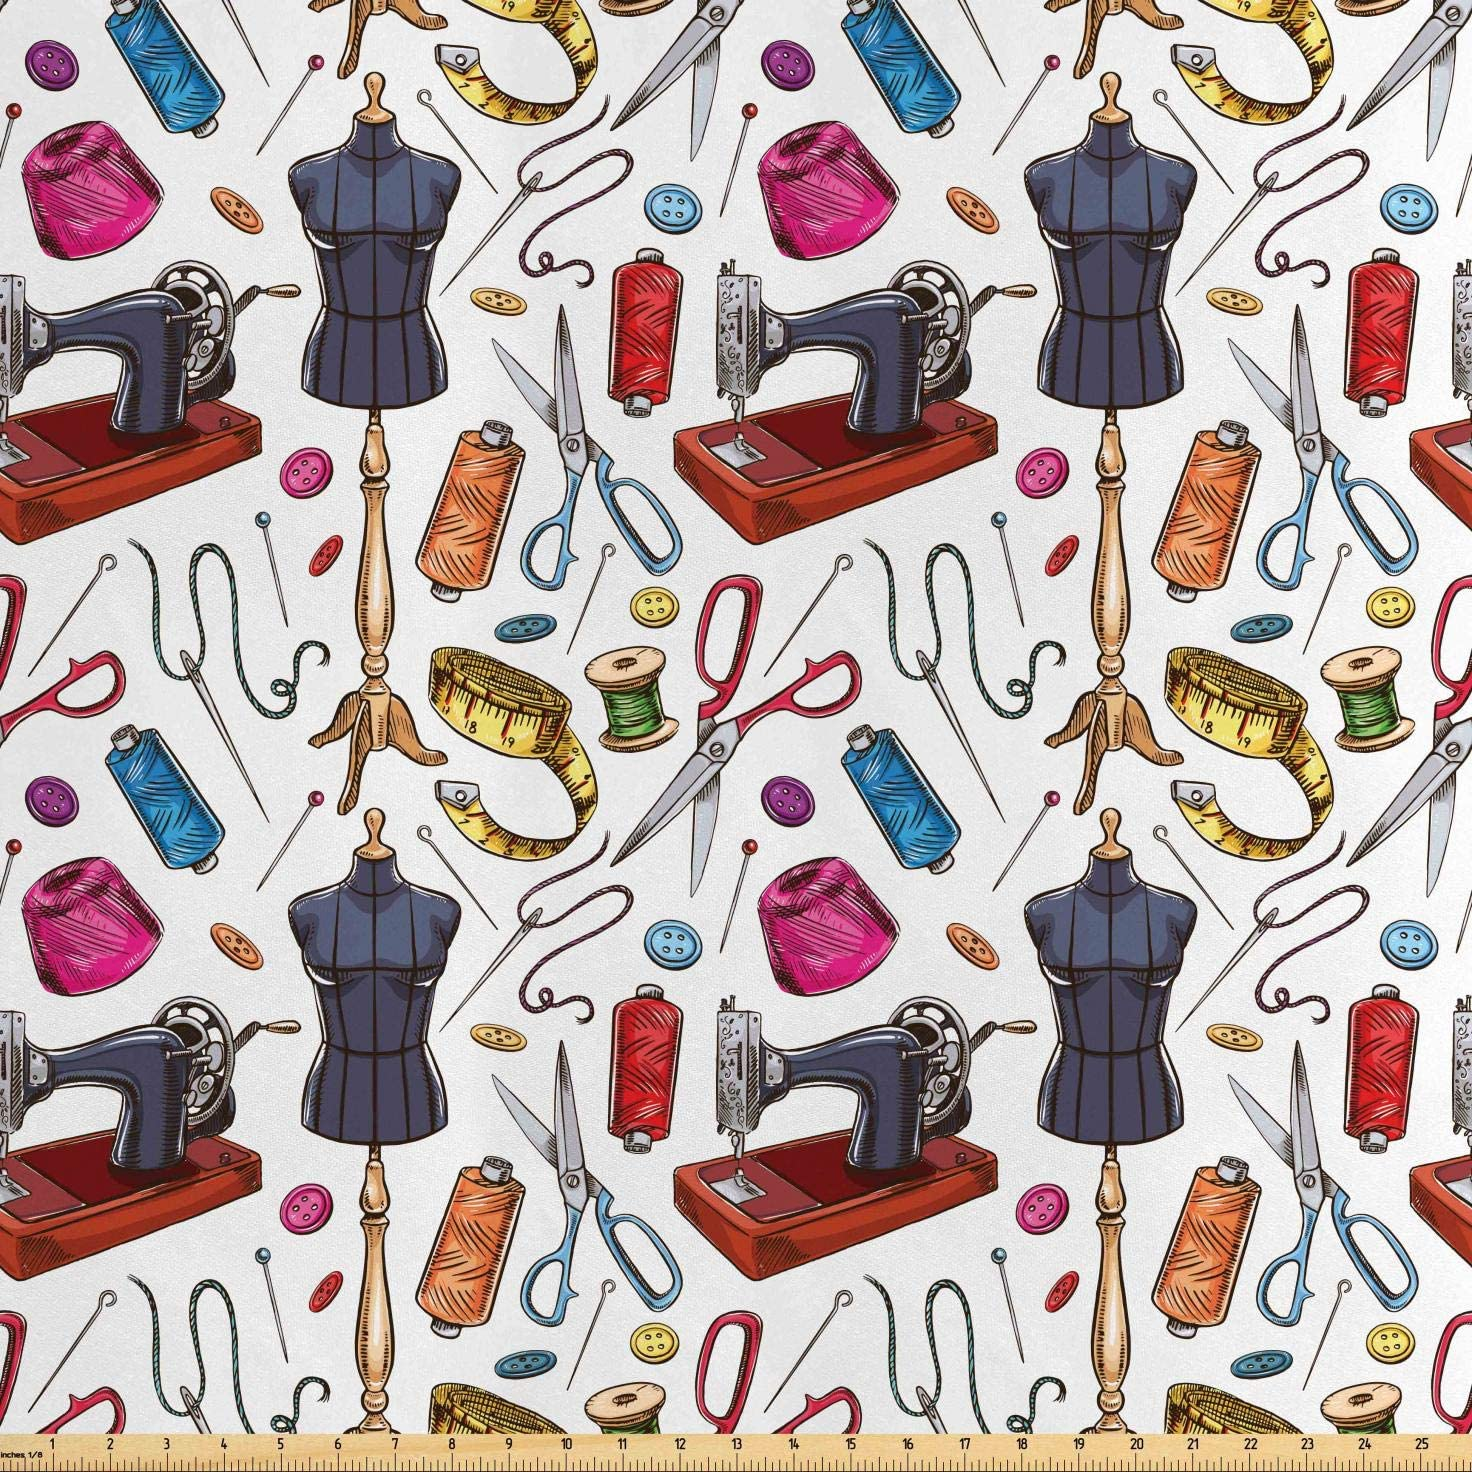 Lunarable Fashion Fabric by The Yard, Pattern with Cartoon Tailoring Equipment as Sewing Machine Thread and Tape Measure, Decorative Satin Fabric for Home Textiles and Crafts, 3 Yards, Red